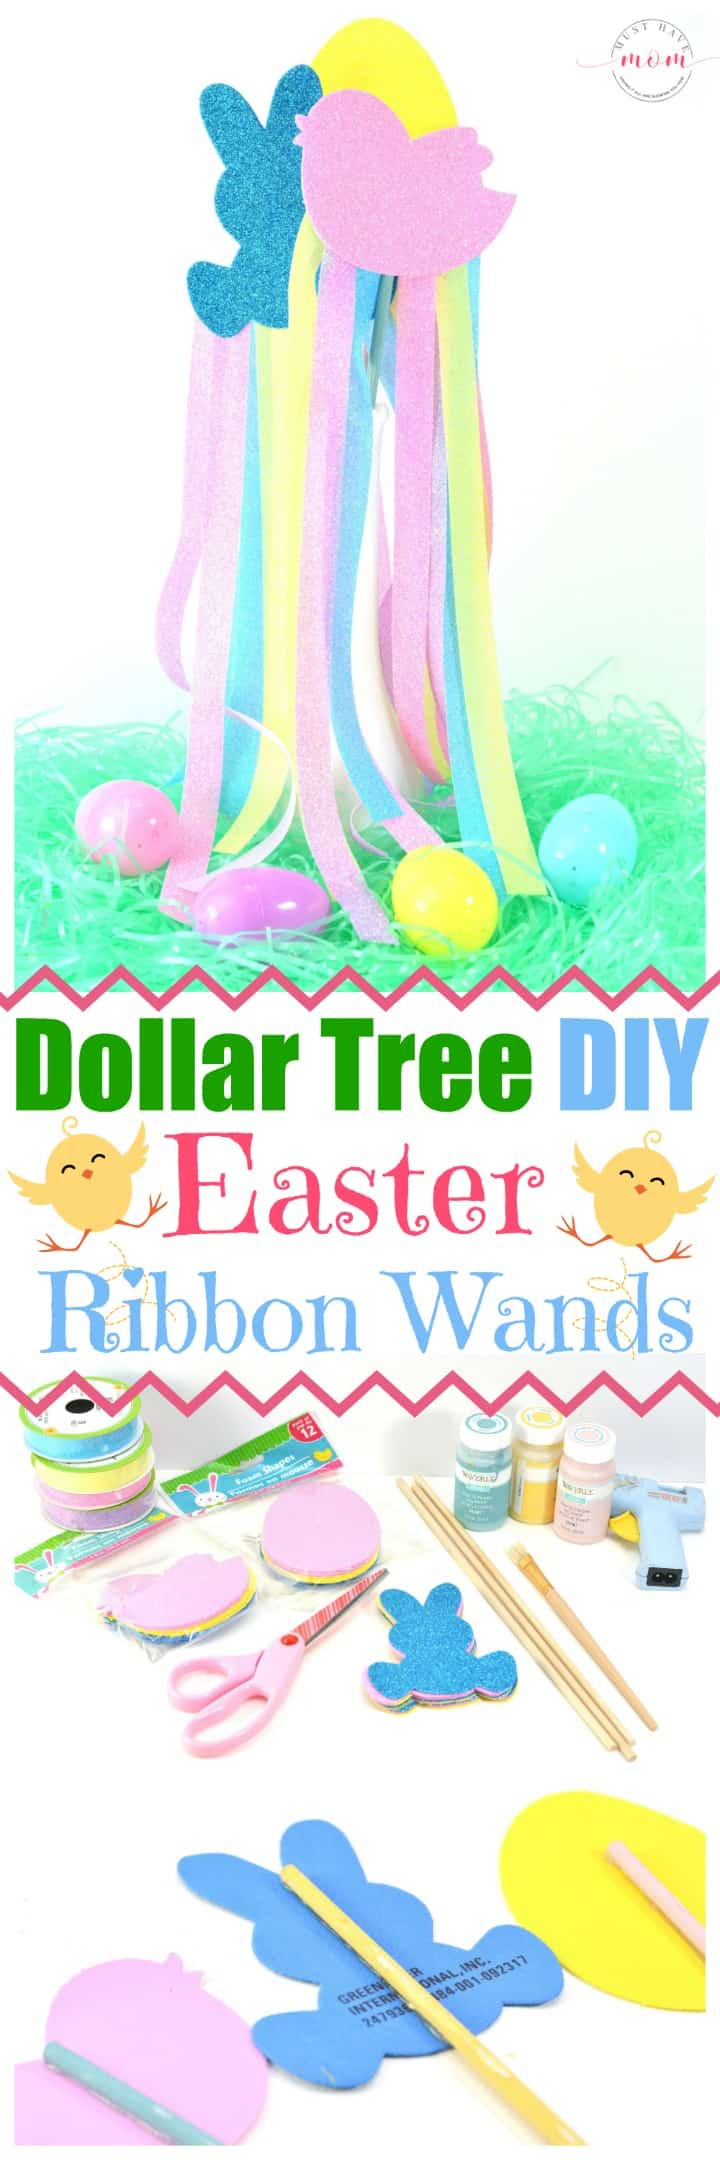 Easy dollar tree DIY ribbon wands Easter craft idea! Dollar store crafts are inexpensive and I LOVE Easter crafts!